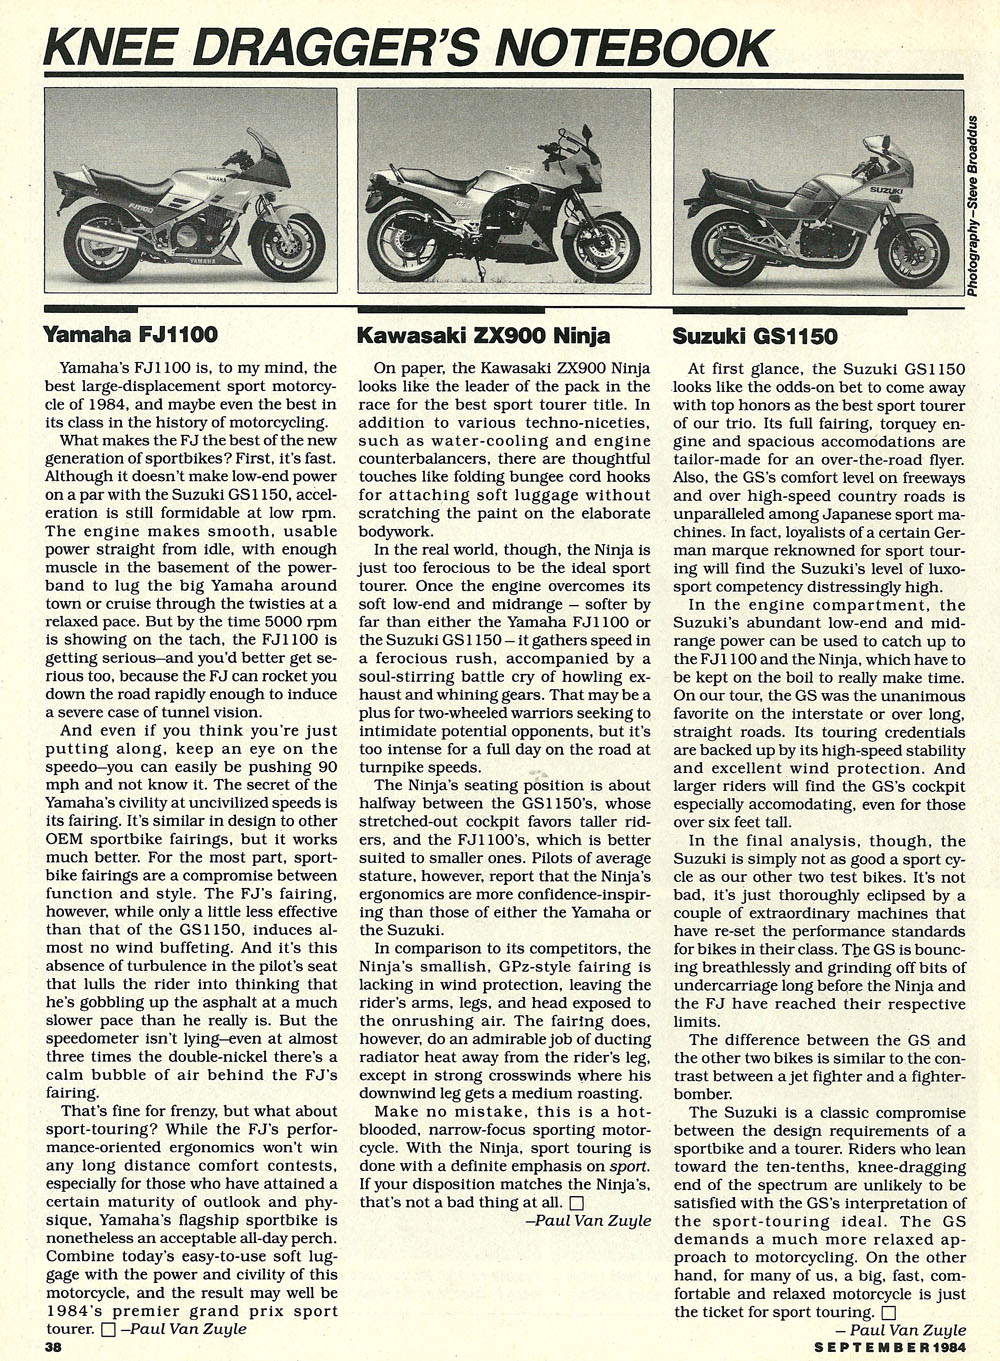 1984 fj1100 zx900 gs1150 road test 05.jpg